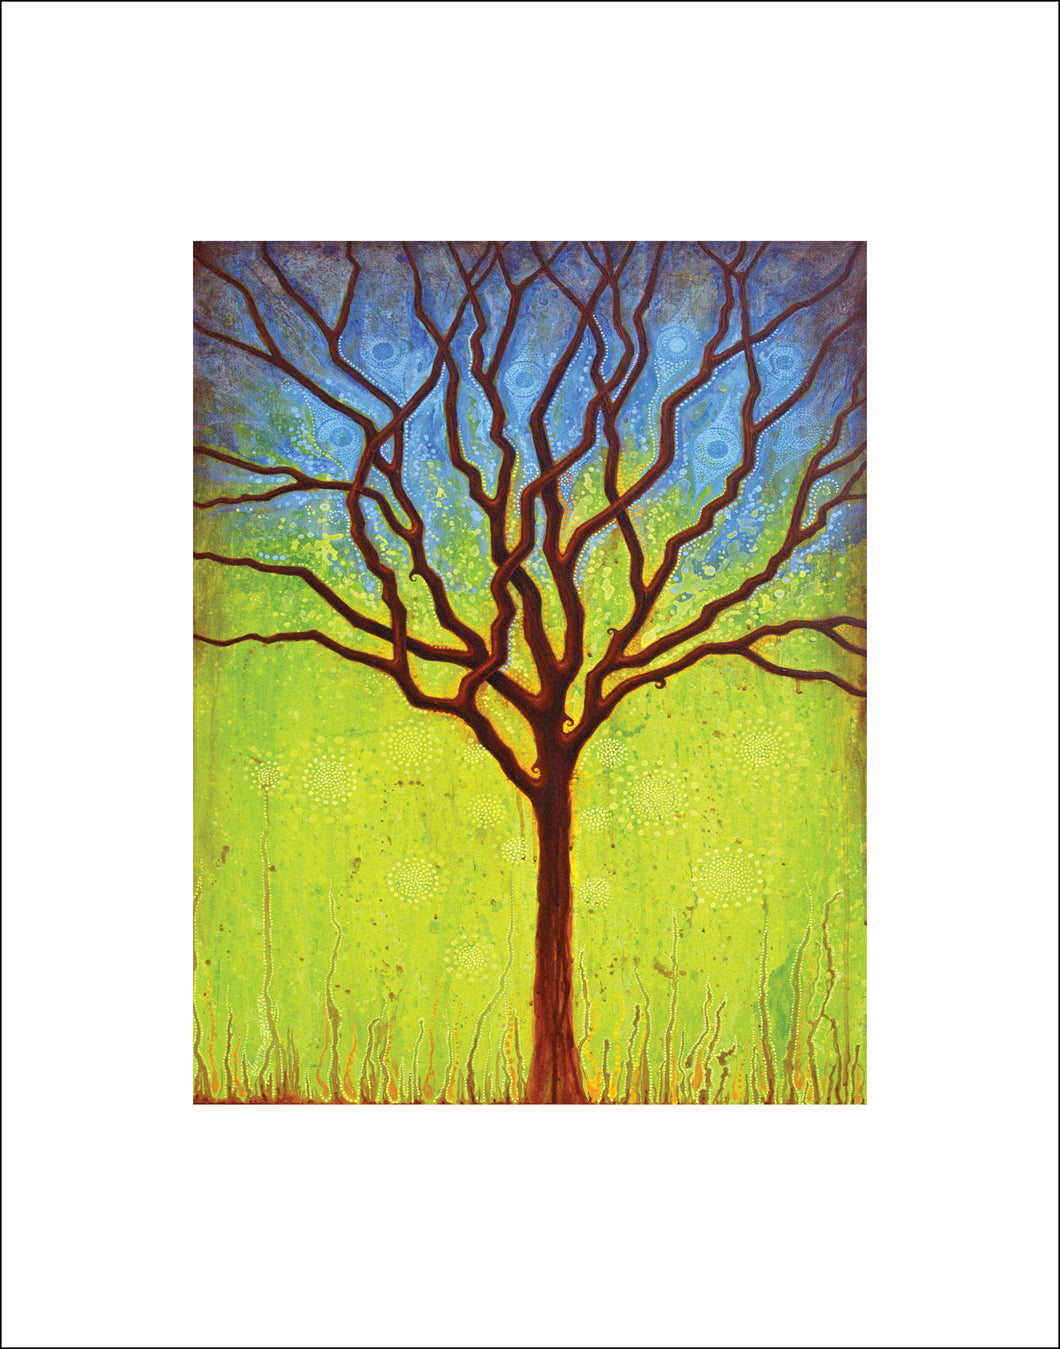 blue and green tree wall art, tree lovers gift, Asheville artist tree print